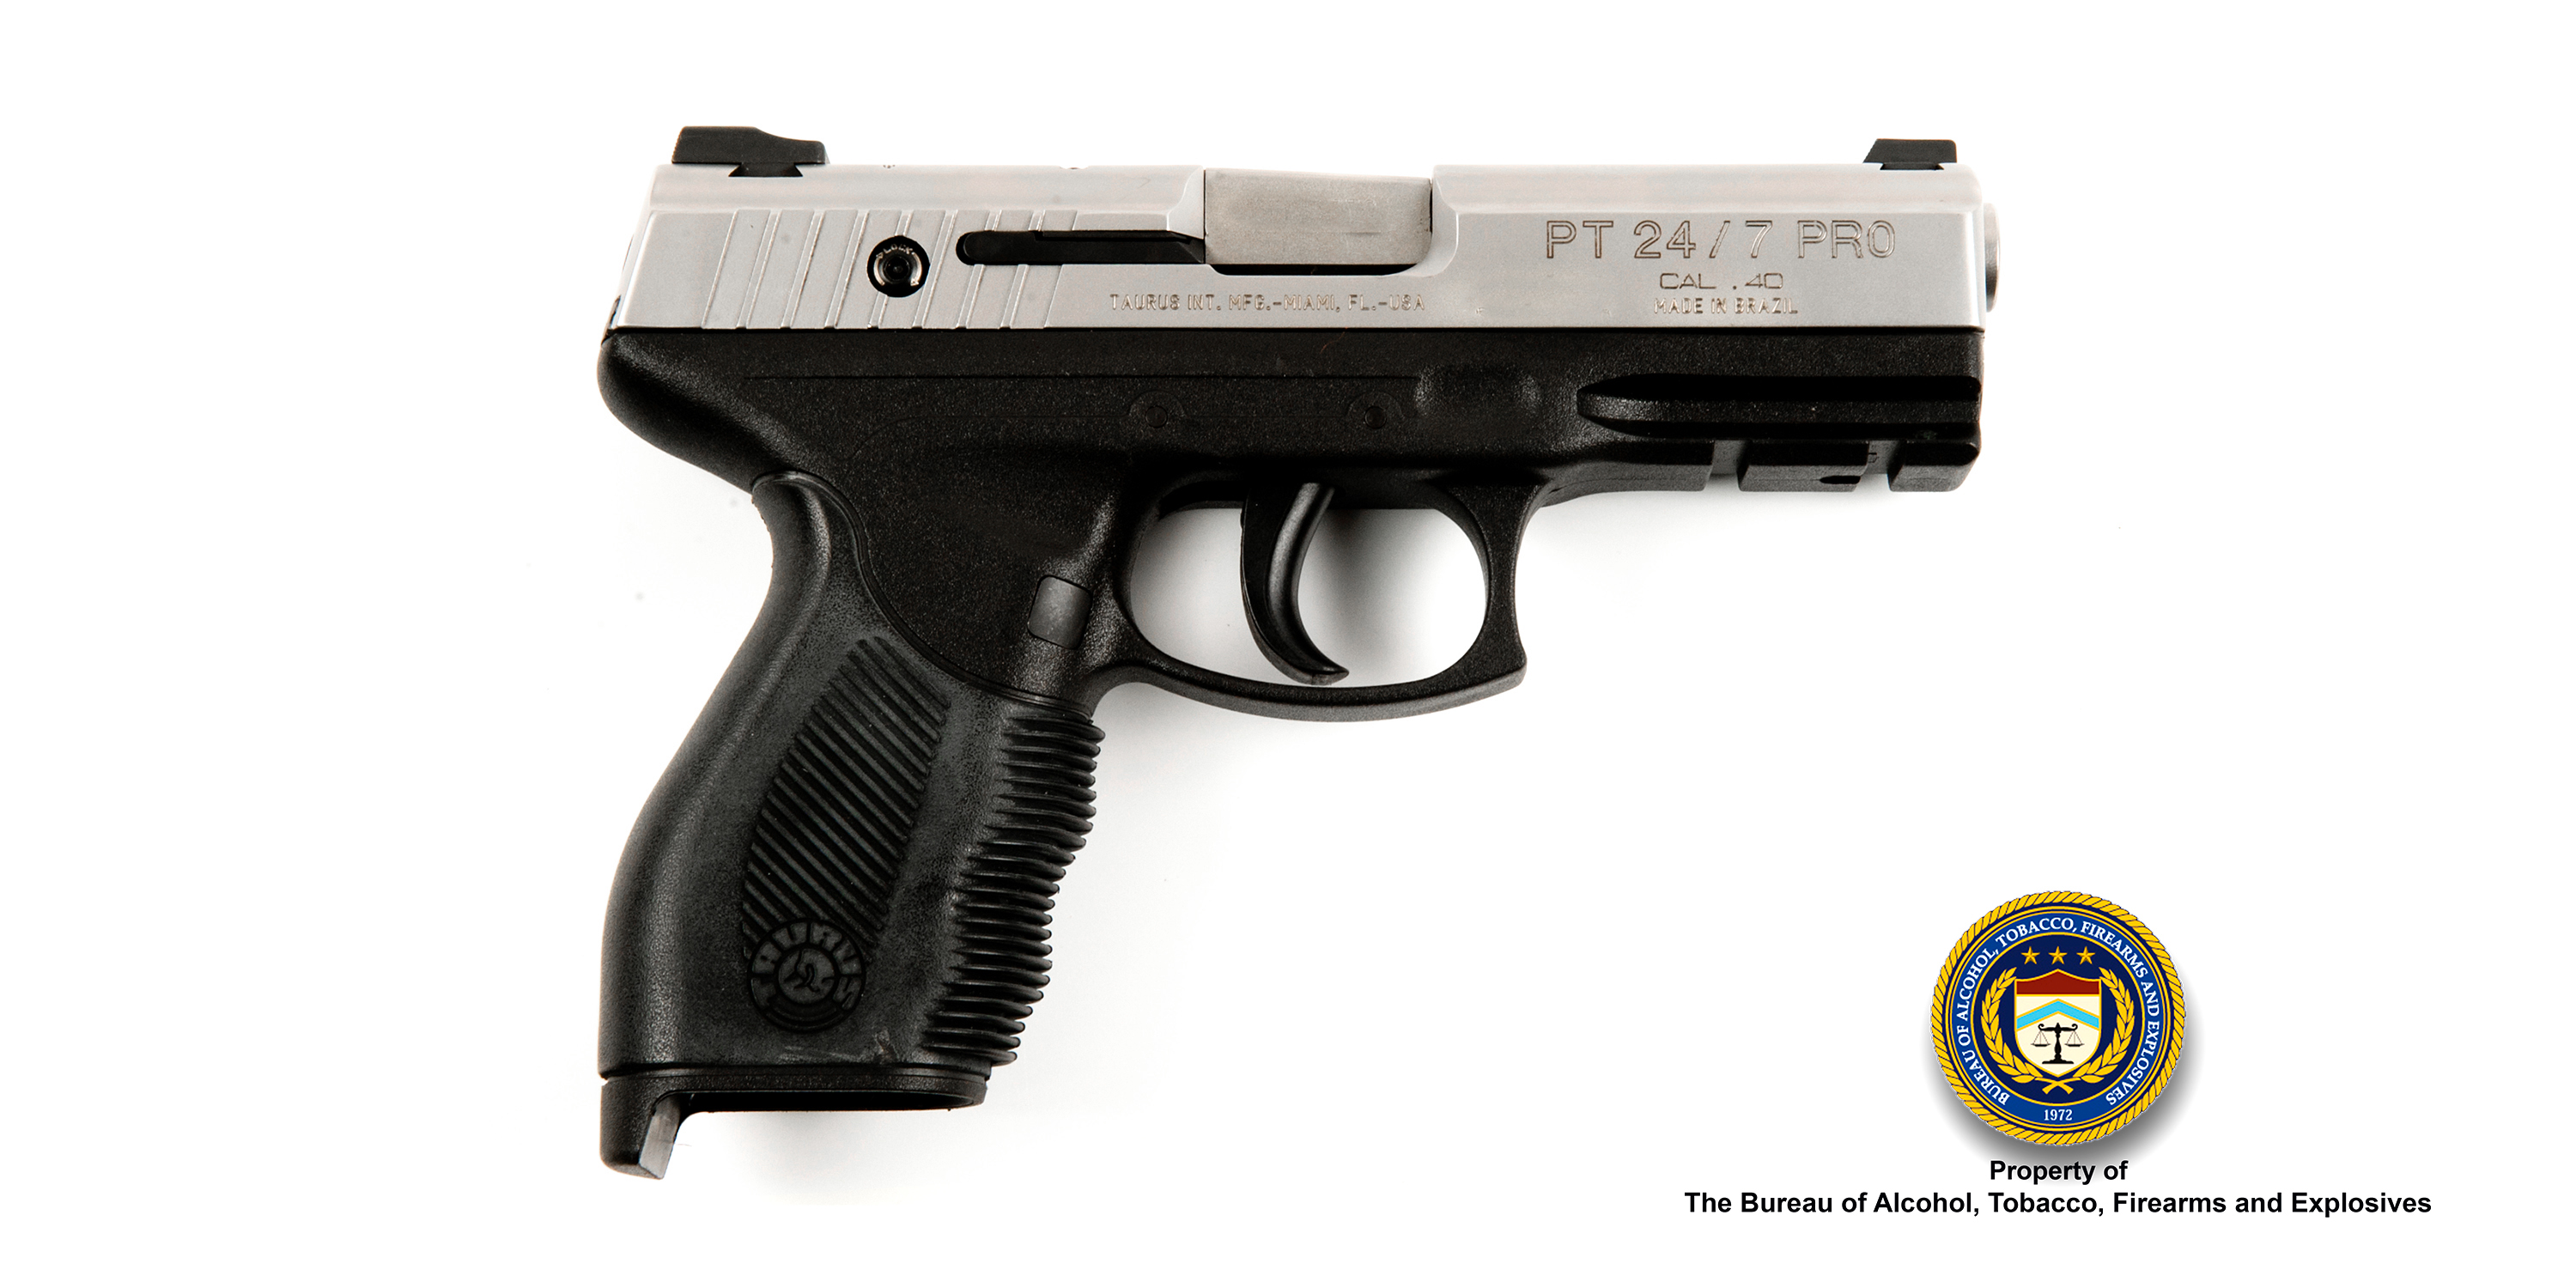 Pistols Bureau of Alcohol Tobacco Firearms and Explosives